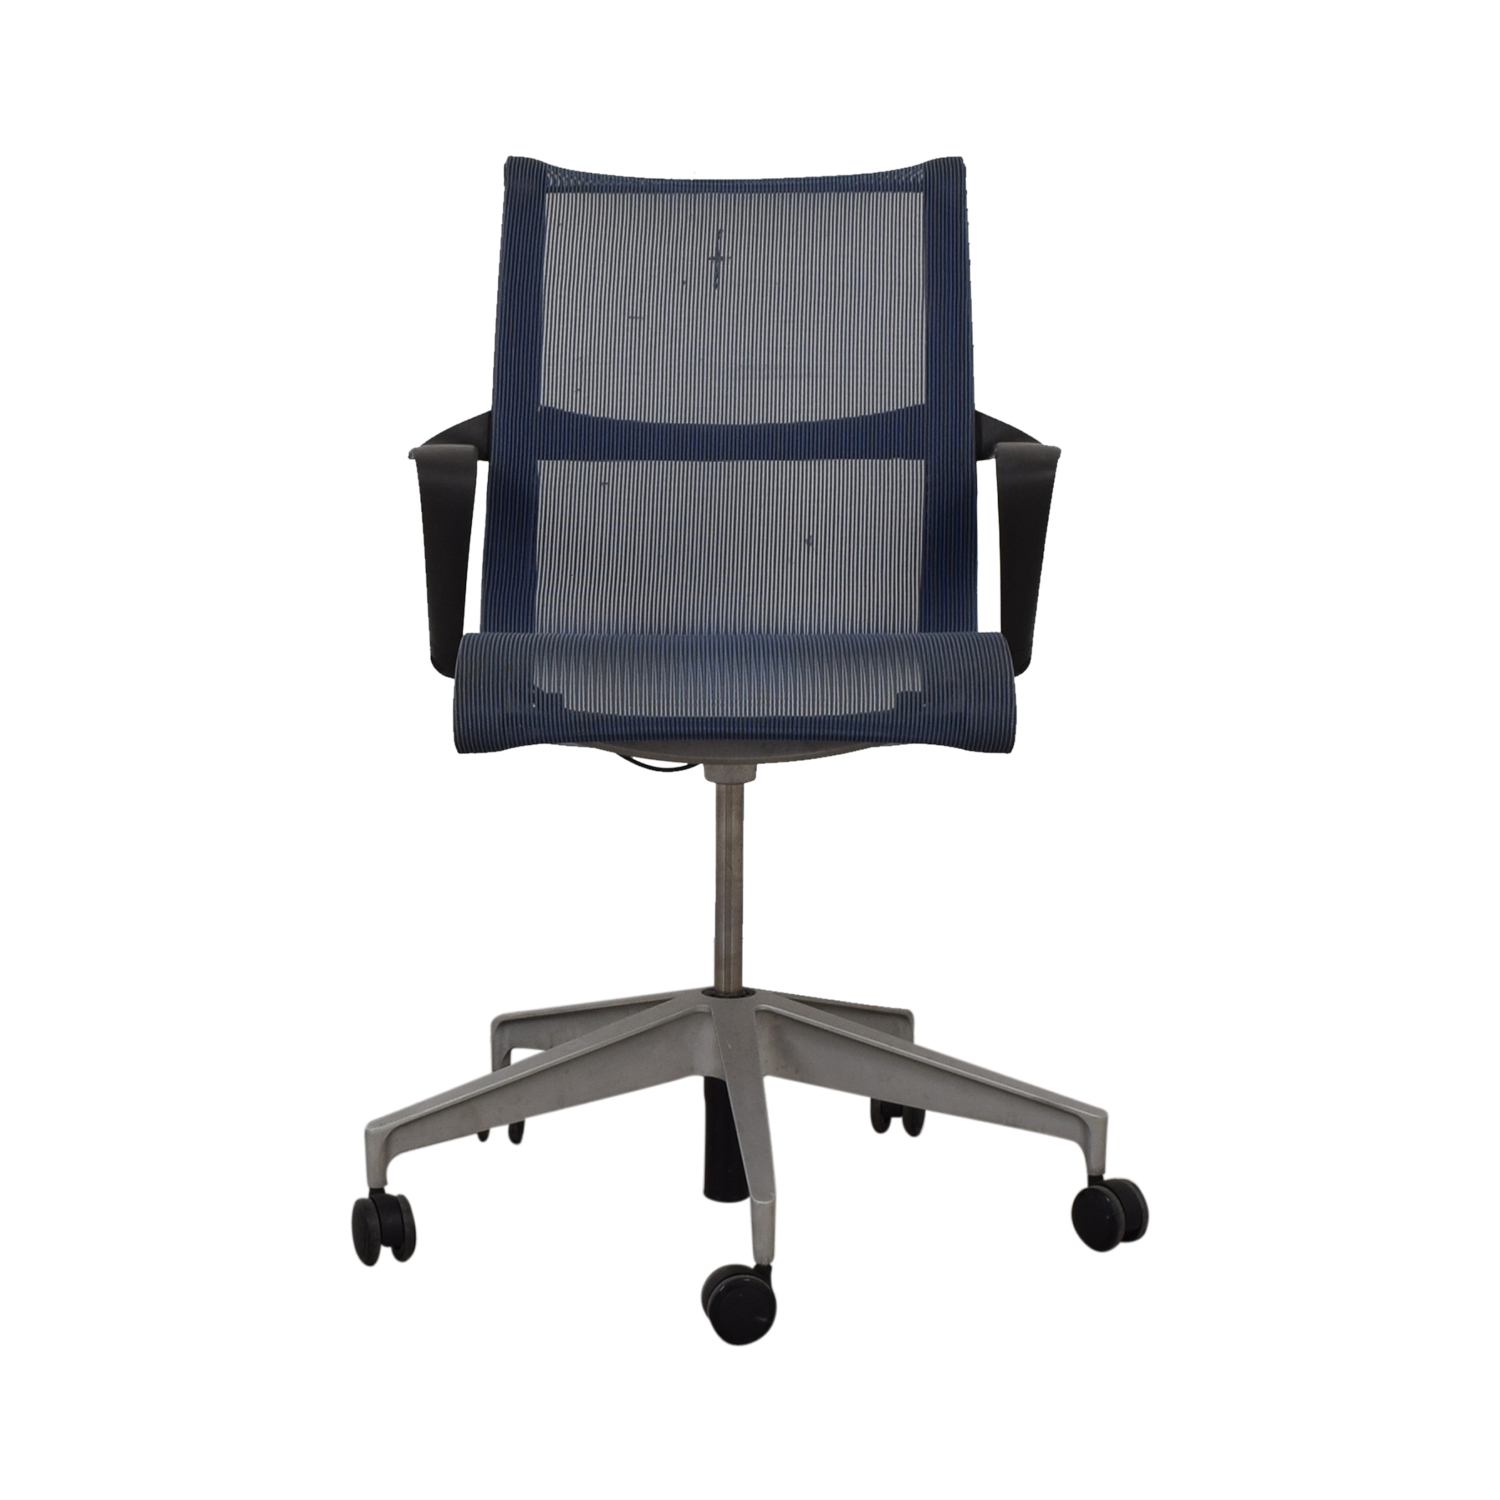 Herman Miller Herman Miller Setu Blue Desk Chair second hand